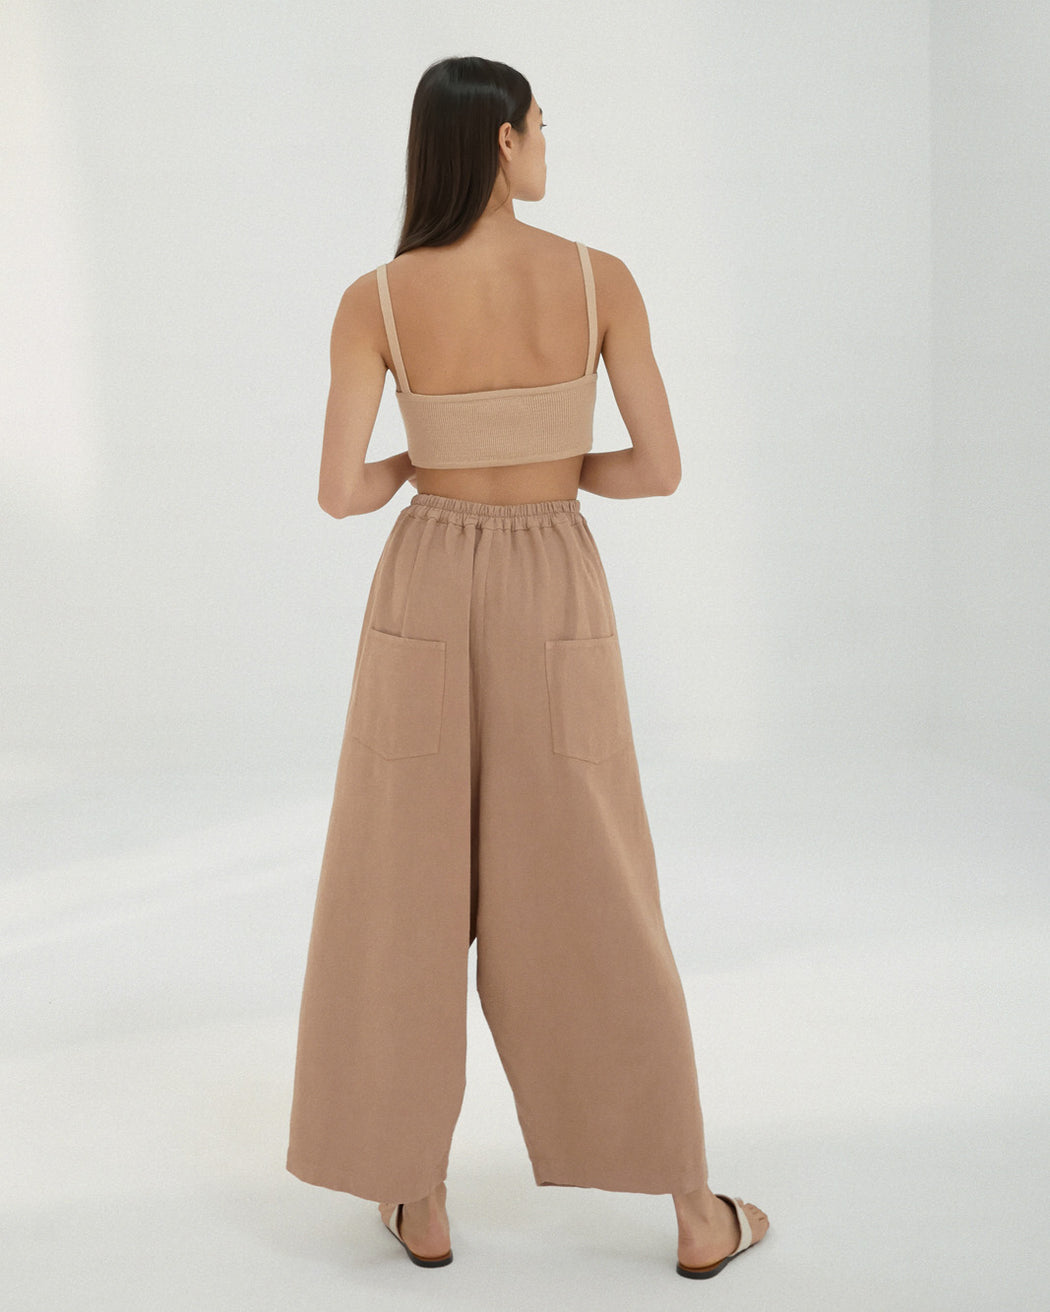 Mónica Cordera | PLEAT FRONT PANTS | CORK | Hazel & Rose | Minneapolis